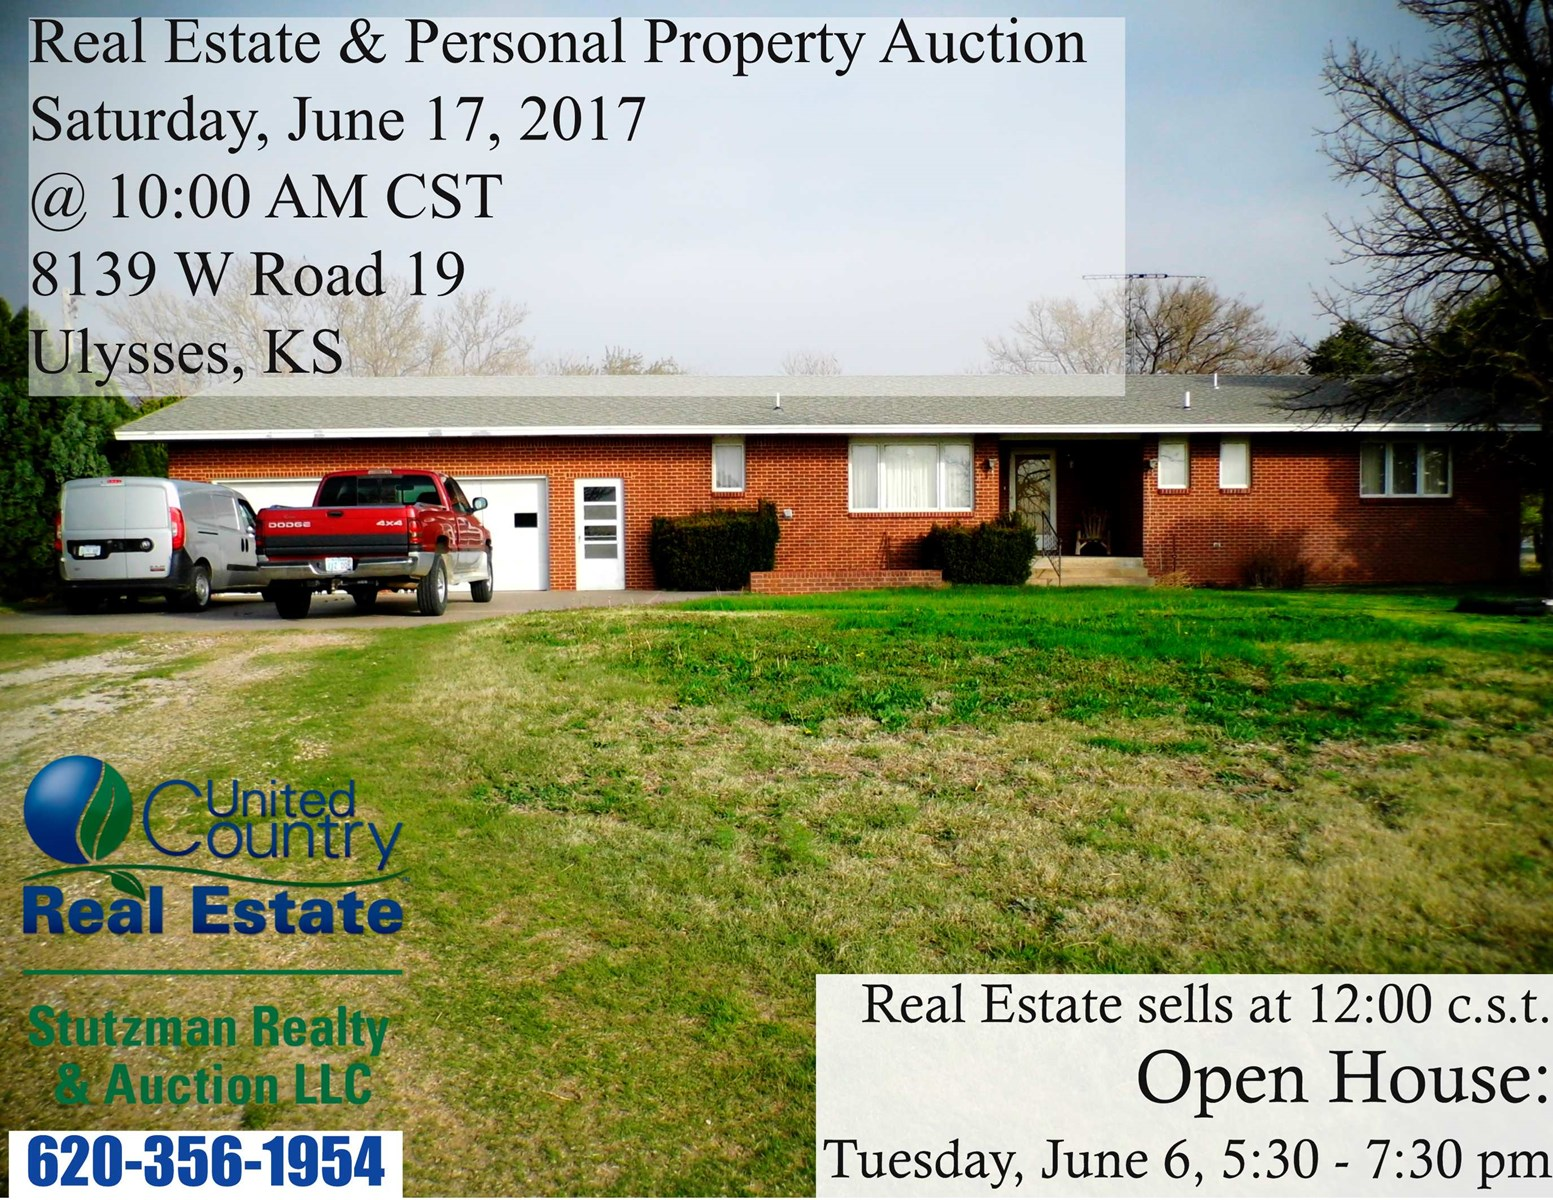 PUBLIC AUCTION 8139 W ROAD 19, ULYSSES, KS